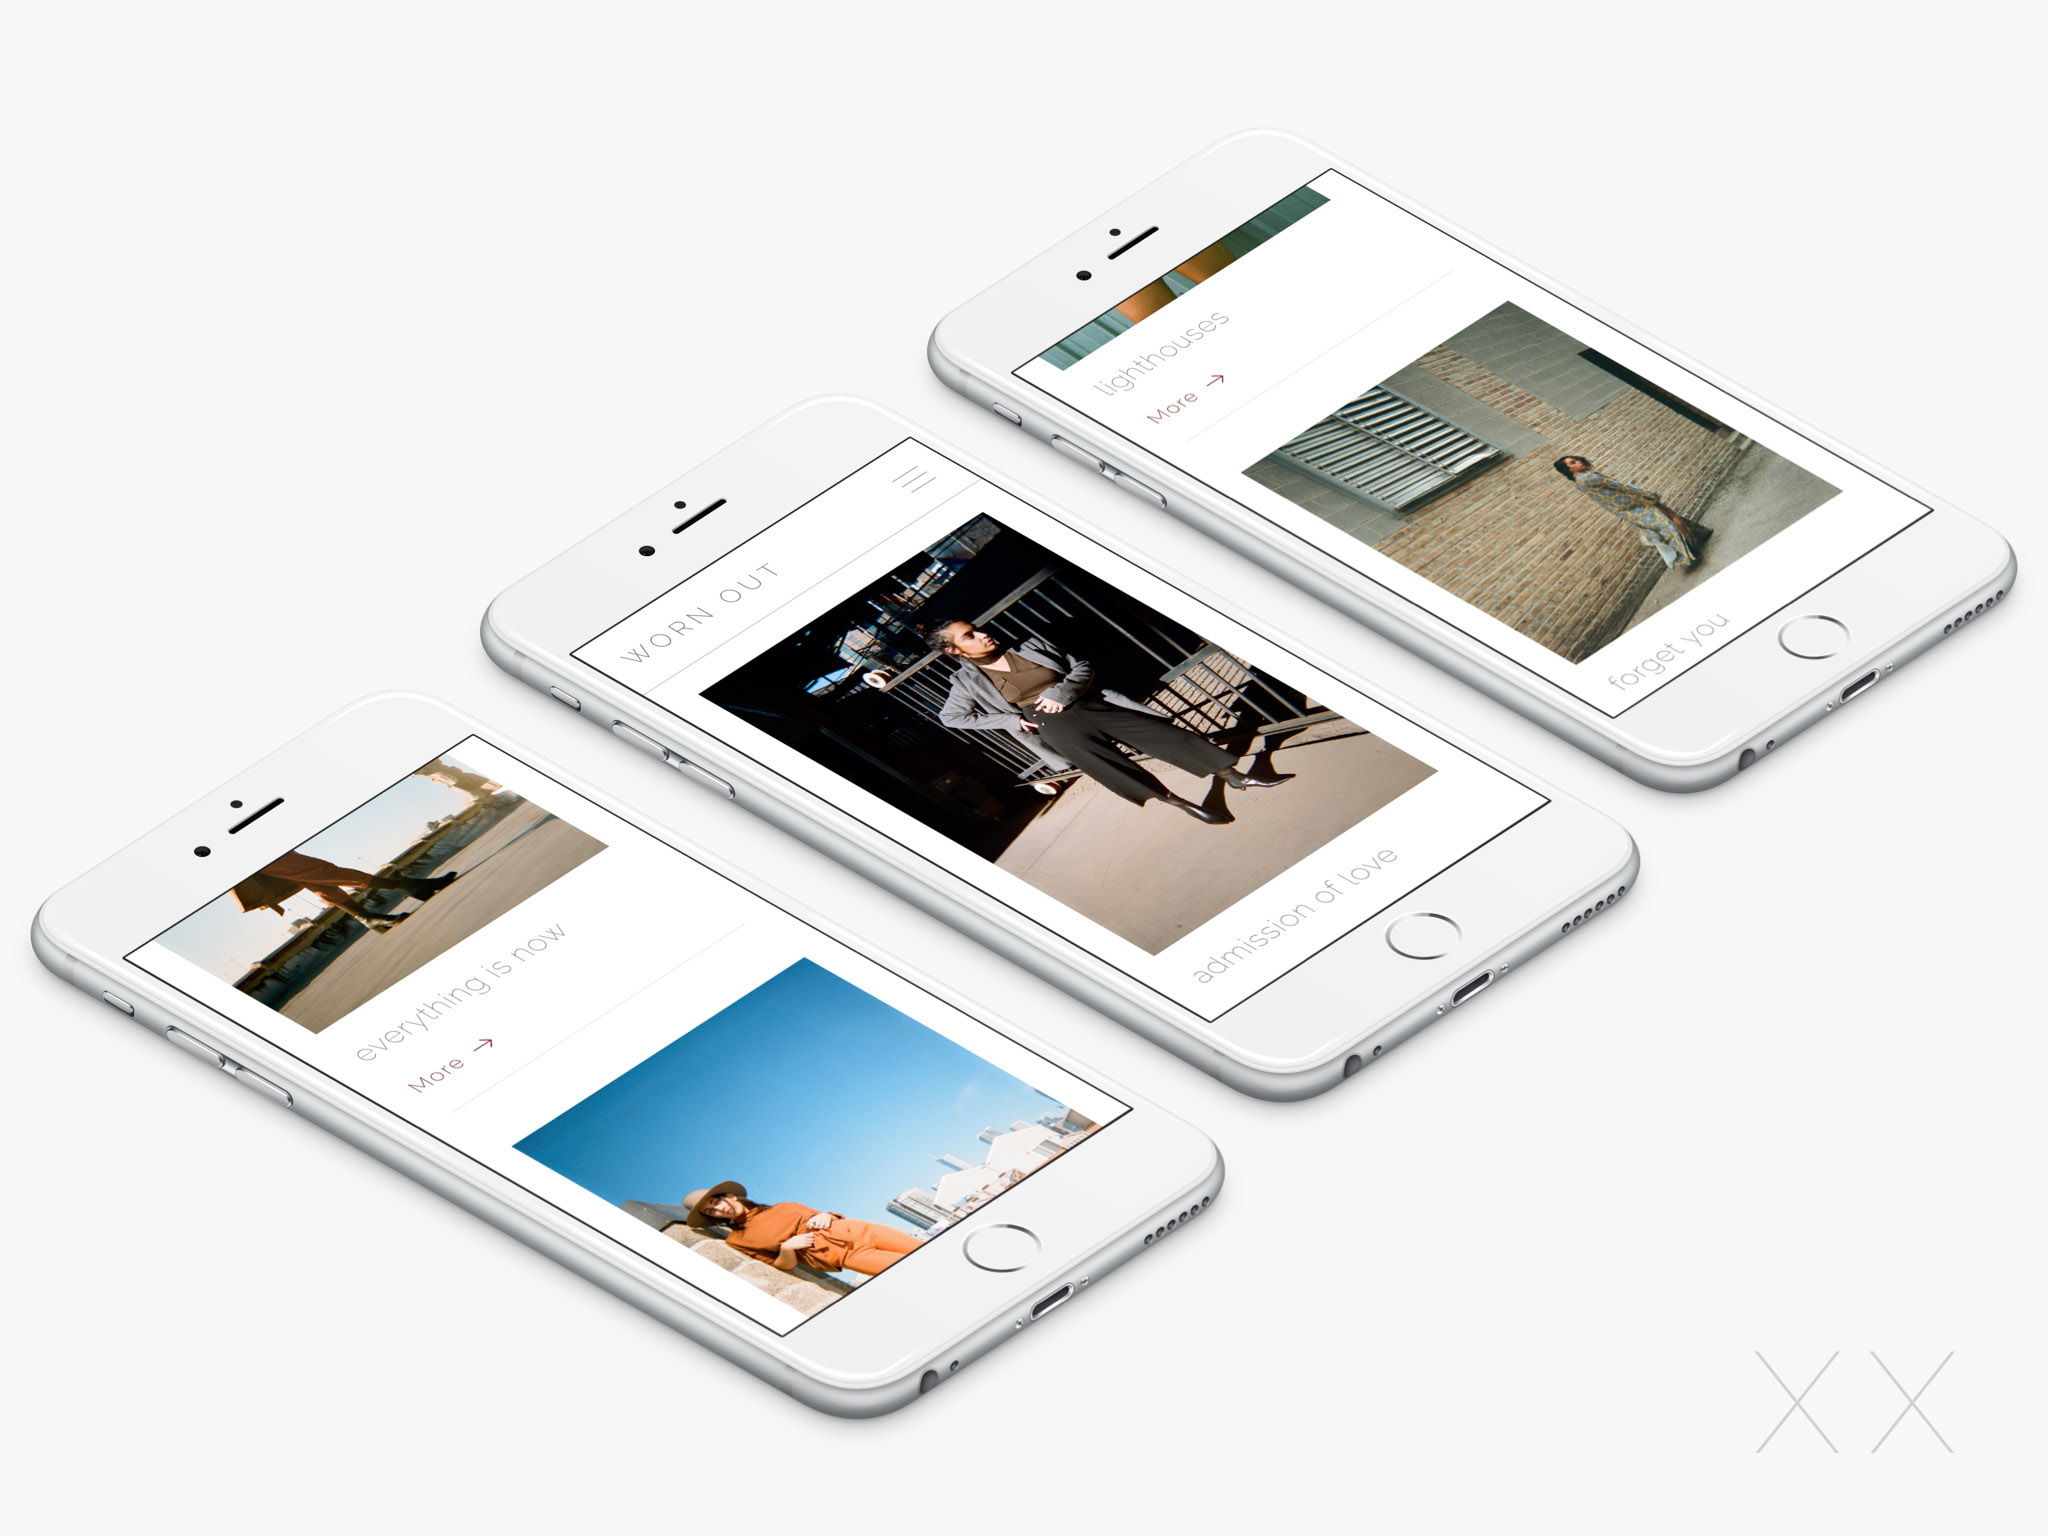 - This is a mockup of a series of iPhones scrolling through the blog archive pages.